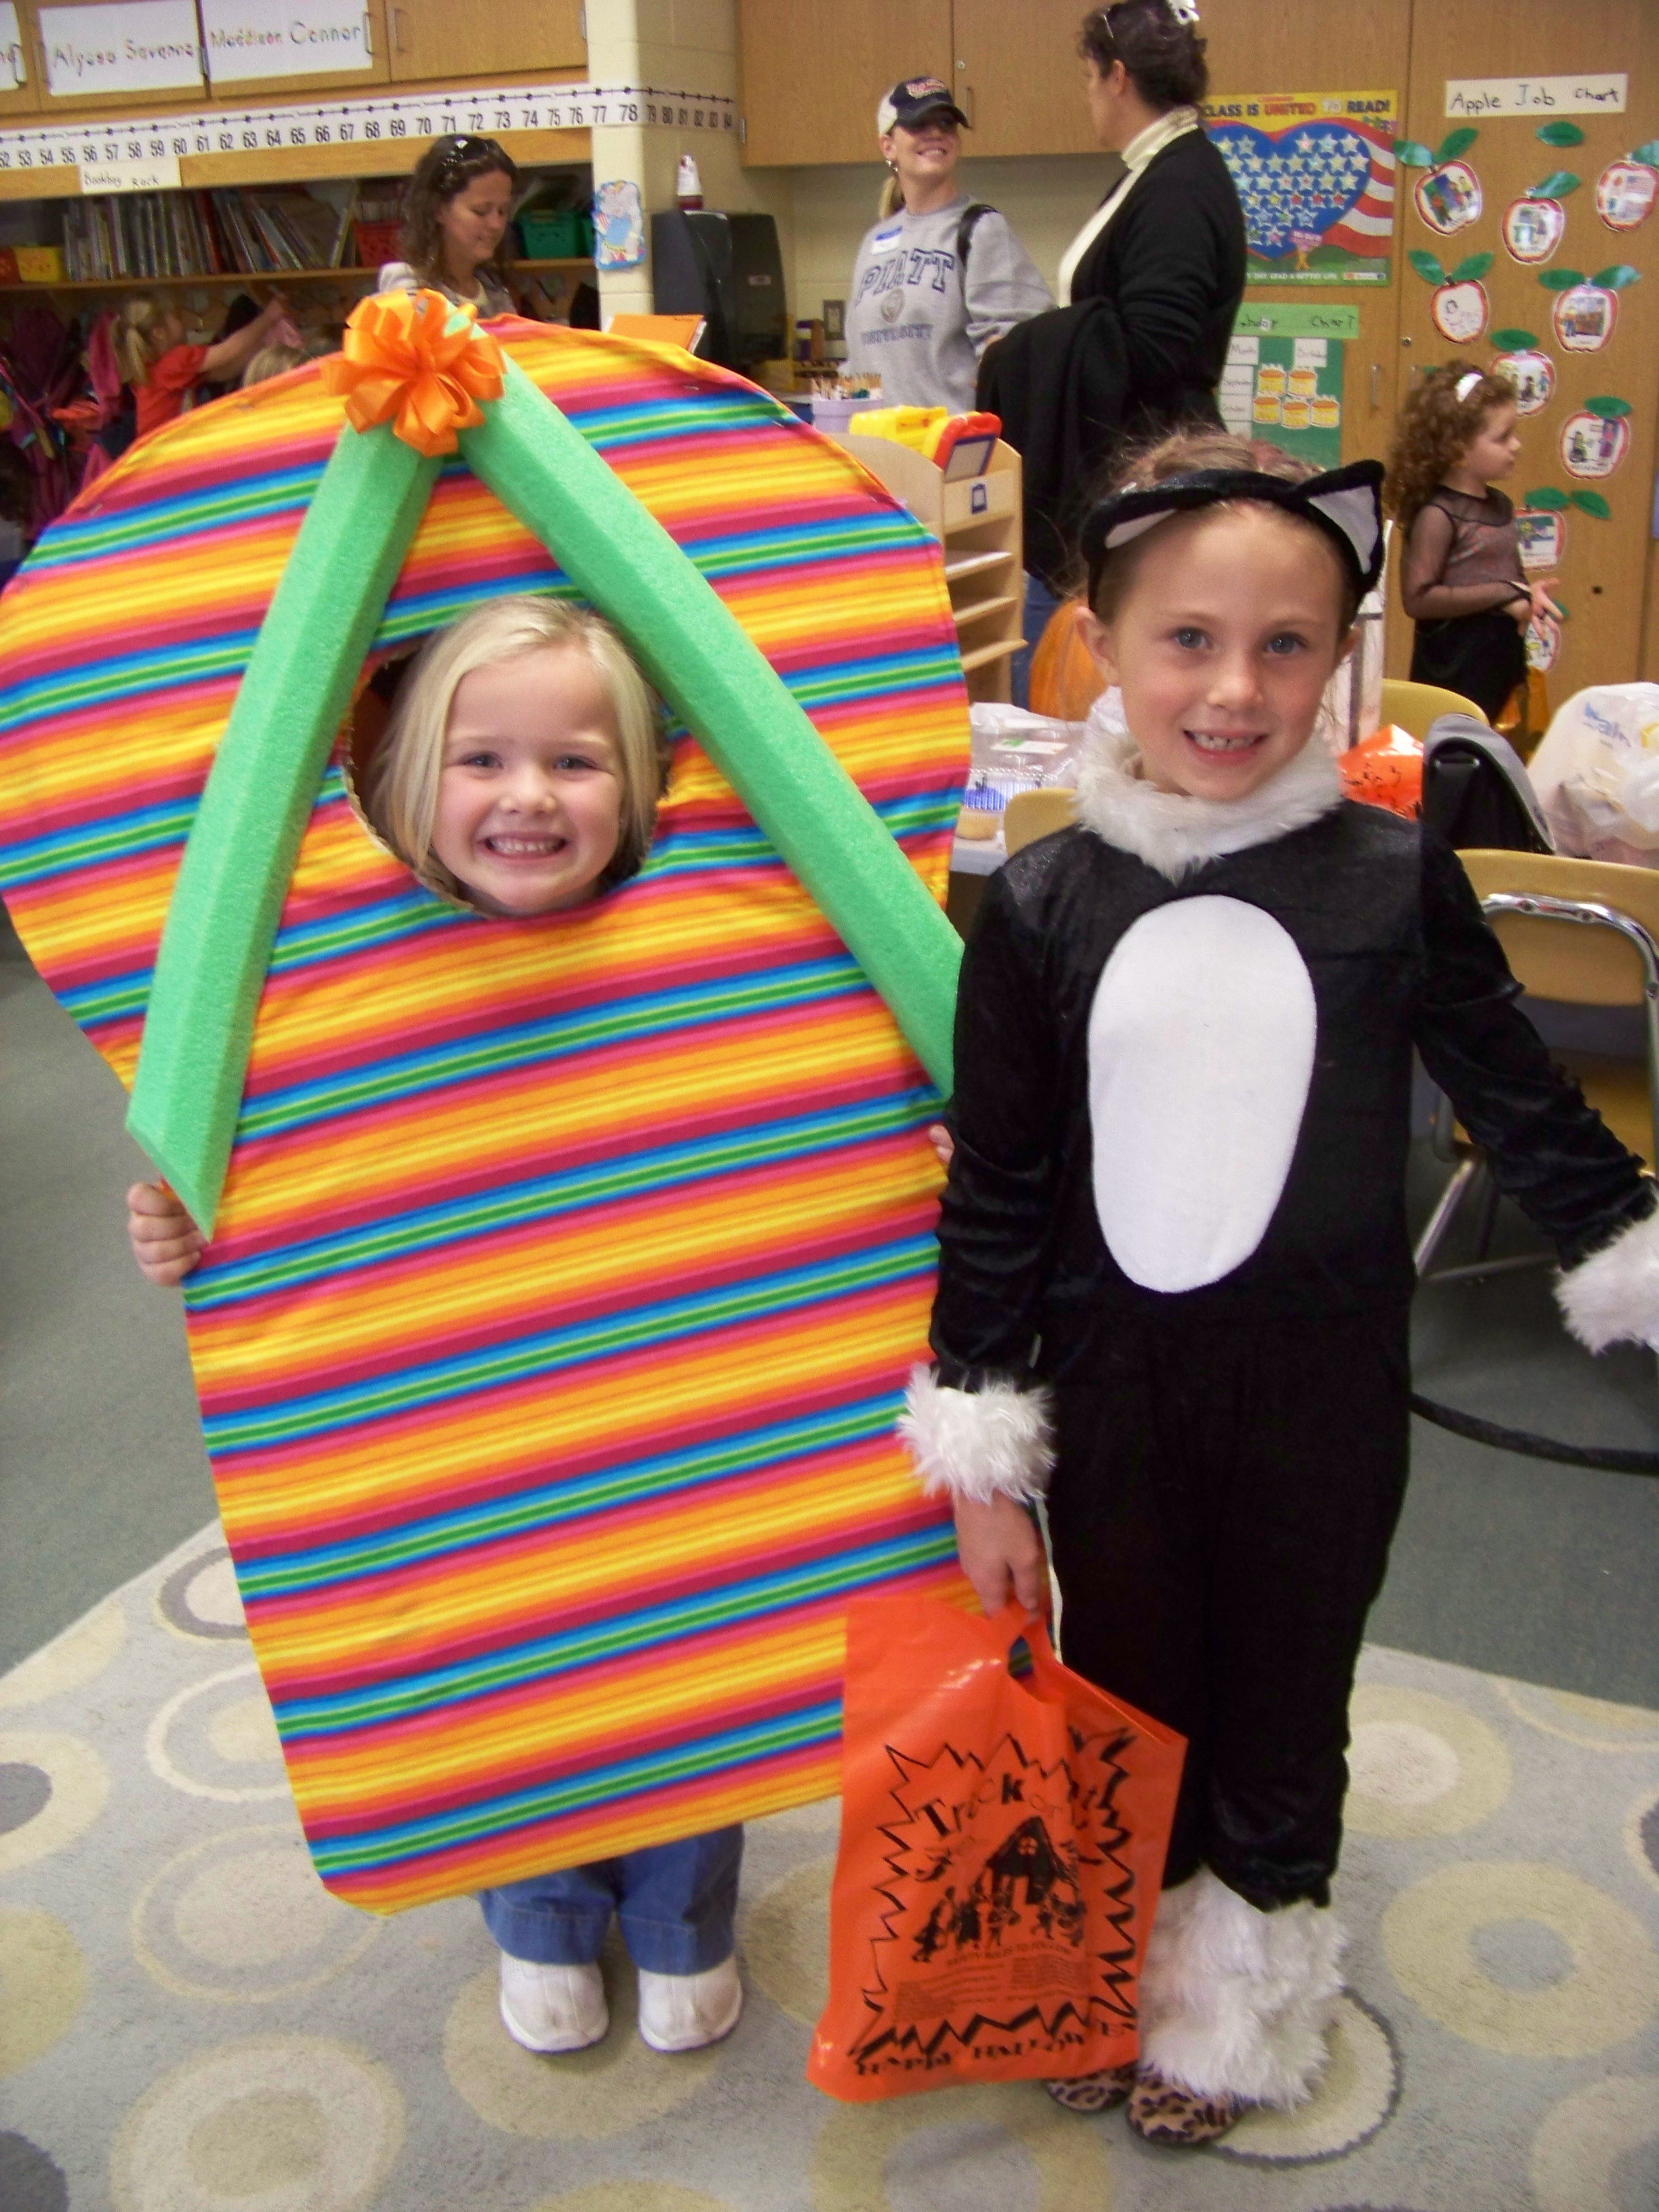 Best ideas about DIY Funny Costume . Save or Pin Flip flop costume homemade costumes C R A F T Now.